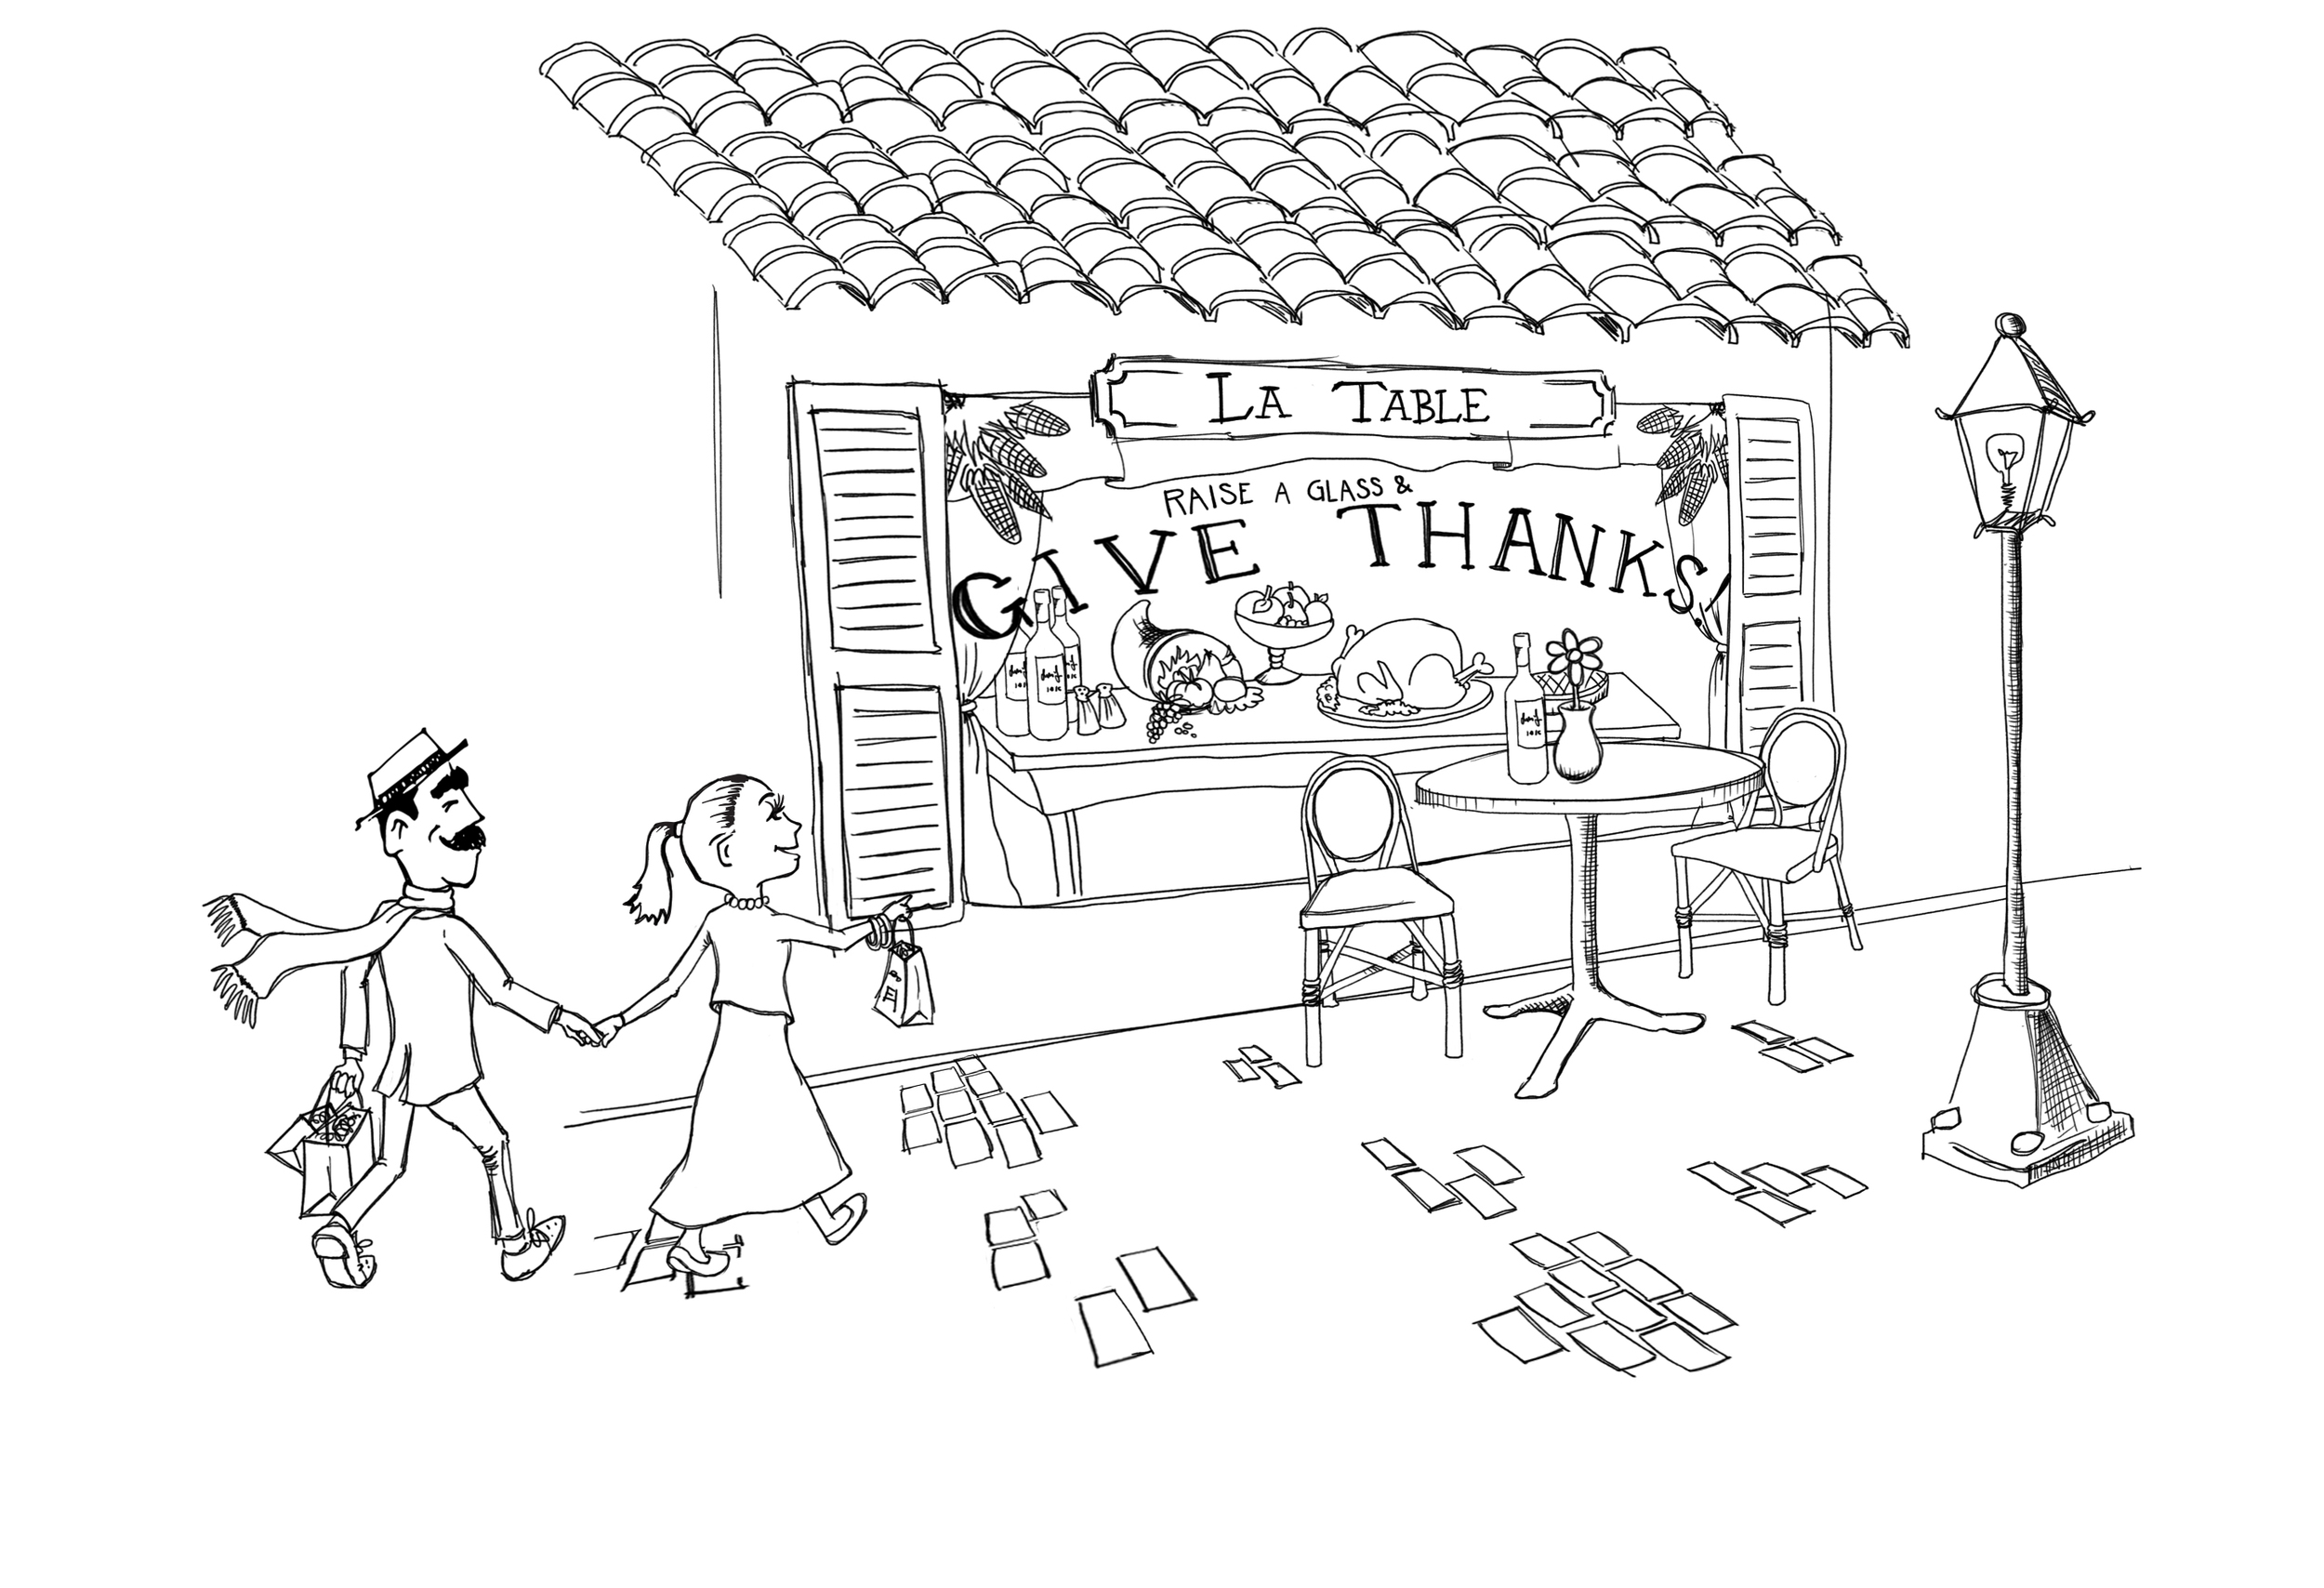 Thanksgiving postcard for Cultivate Wines